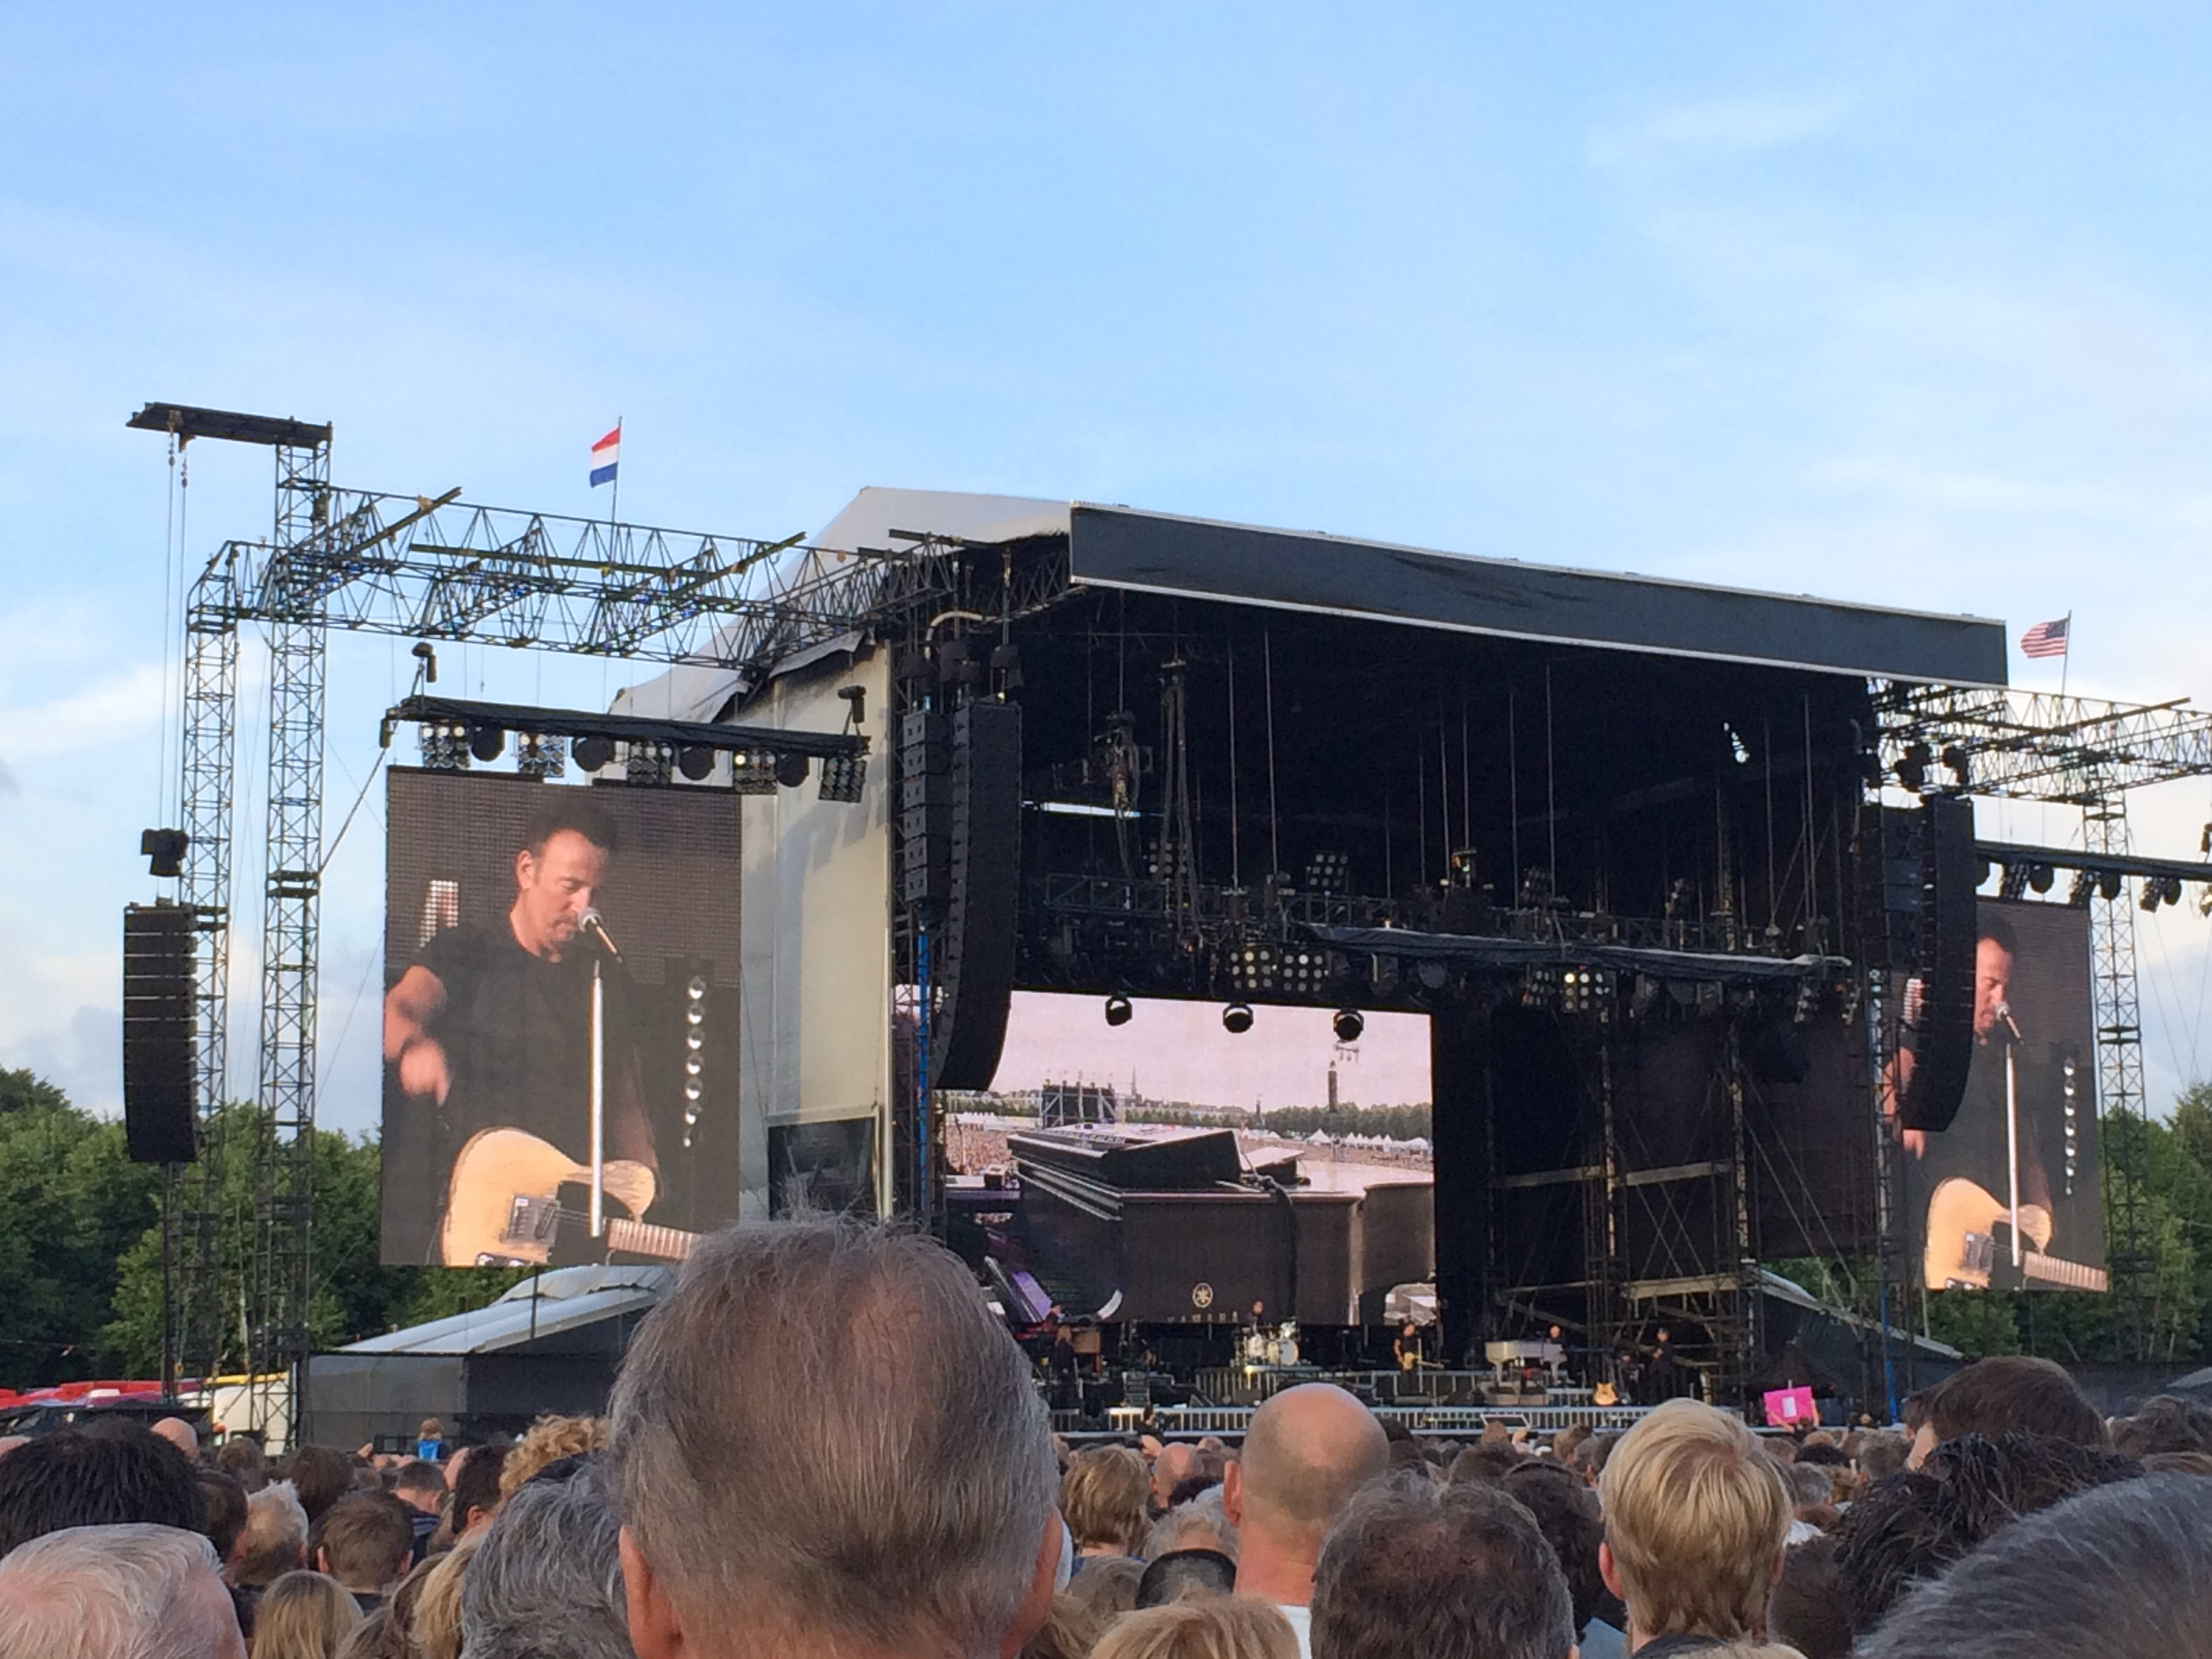 Concertreview: Racing In The Hague